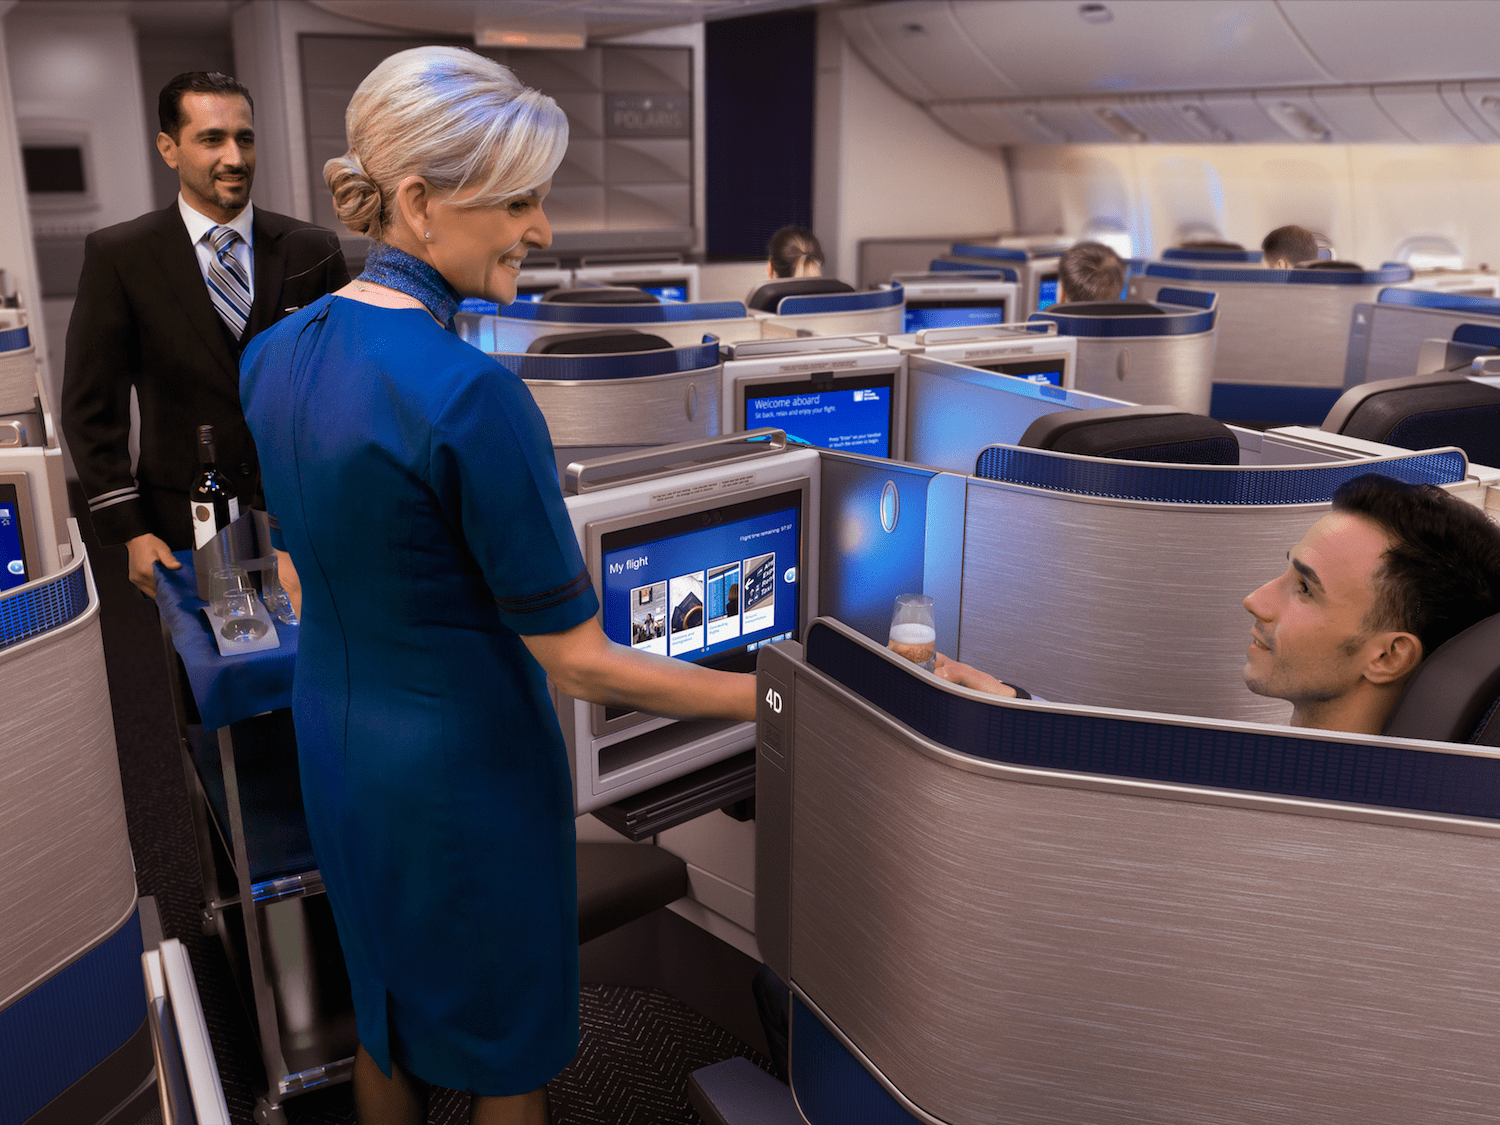 United Airlines Polaris Business Service Cart